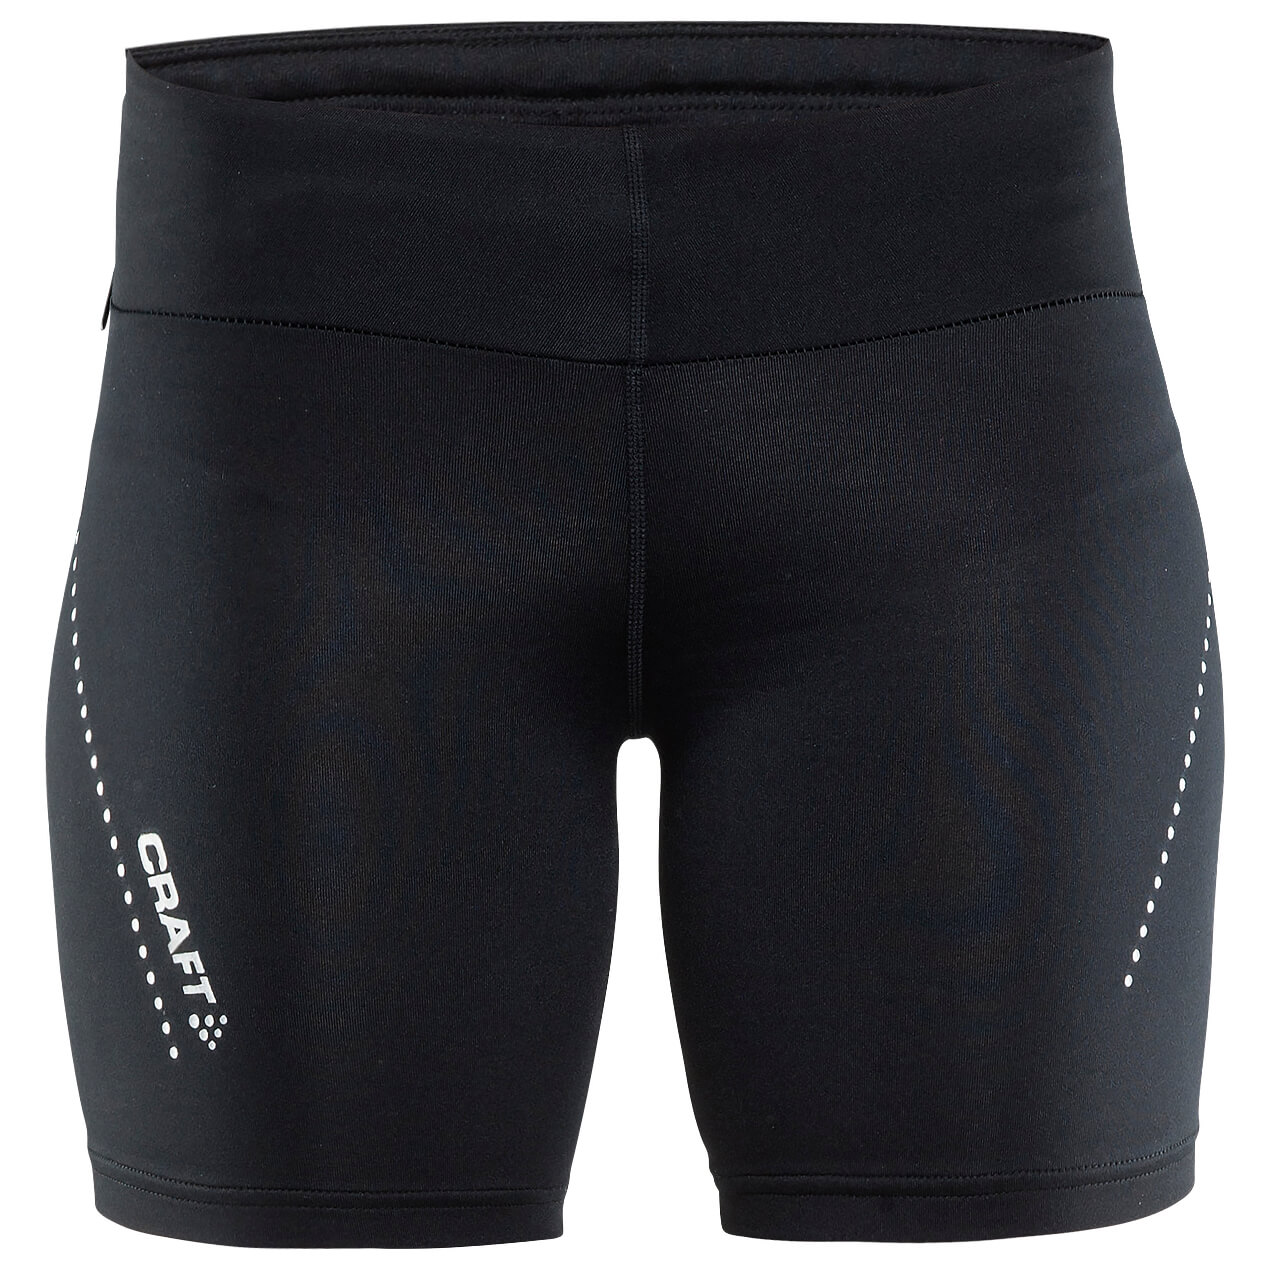 Craft - Women s Essential Short Tights - Running shorts ... da520aacd